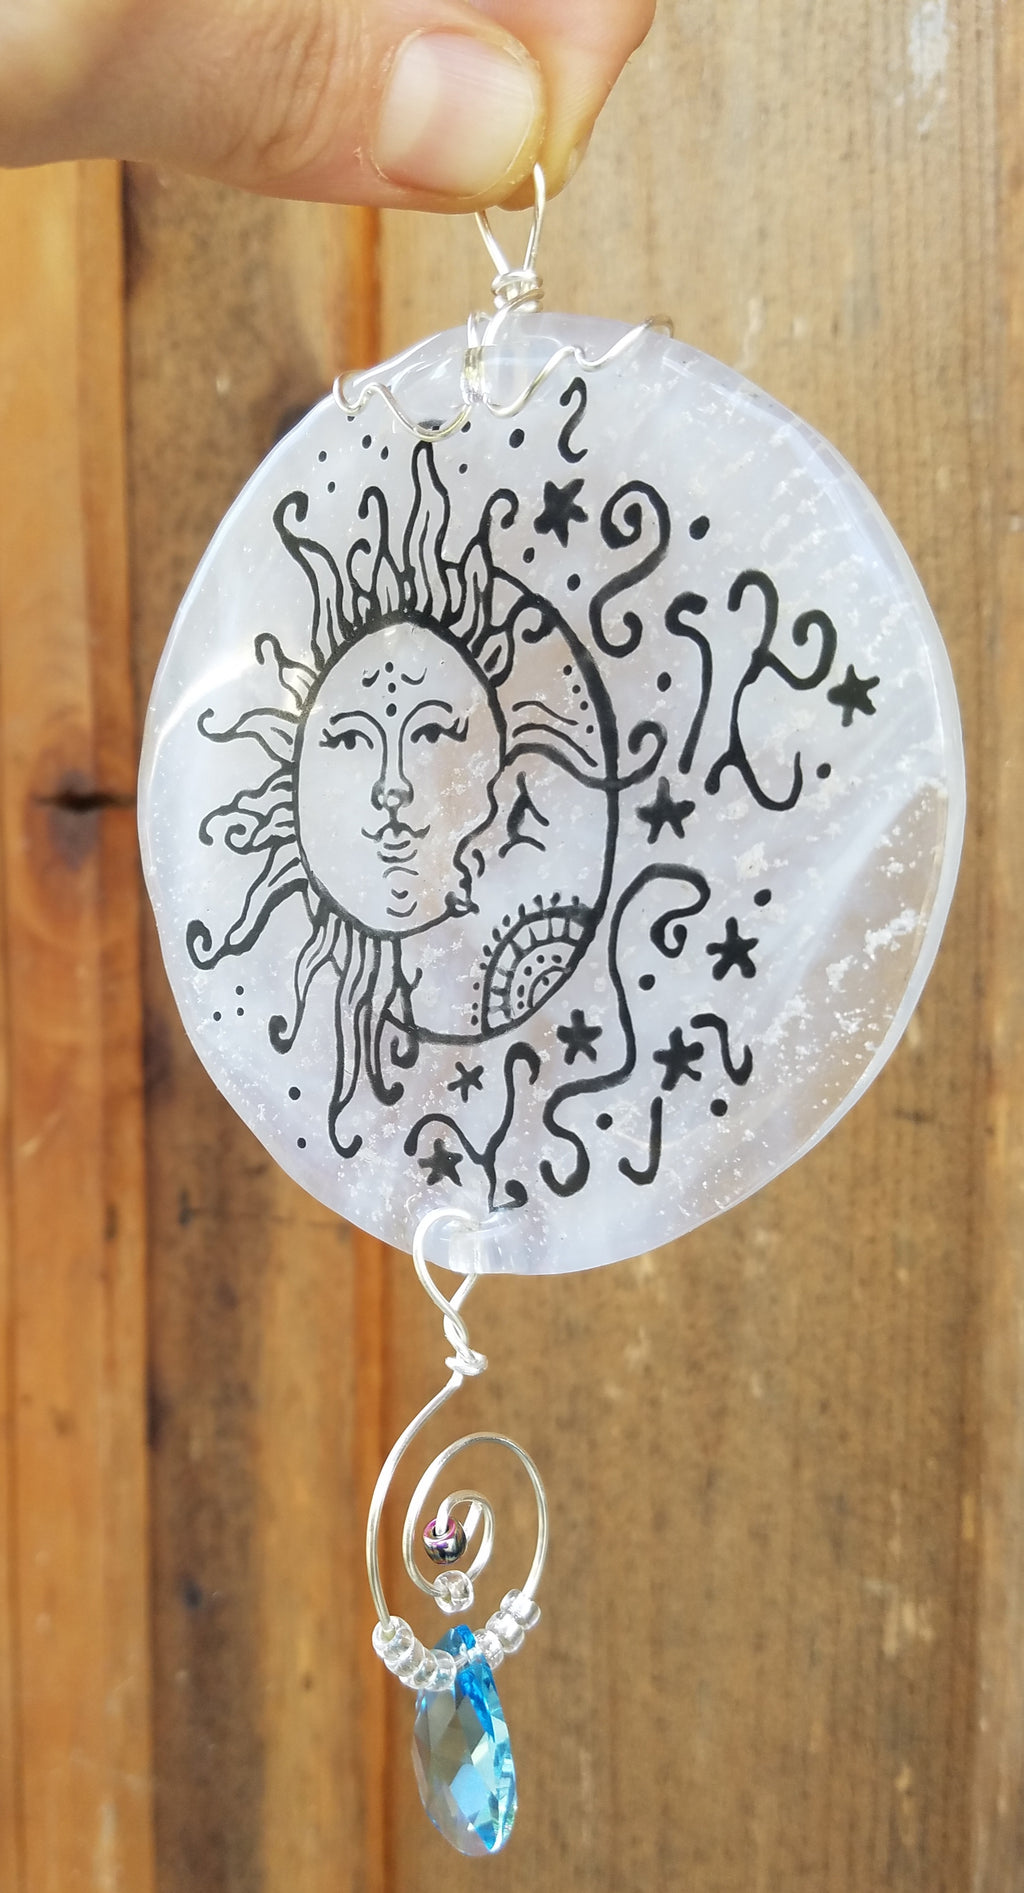 moon and sun suncatchr outside Celebration of life Funeral Memorials. Ashes in Glass Cremation Glass Art Sculptures, Cremation Wind Chimes, Cremation Sun Catchers, Table Displays, & Cremation Jewelry Custom USA Handmade by Infusion Glass. Ashes Infused Glass Human and Pet Cremation Ash Urns  Ashesinfusedglass.com